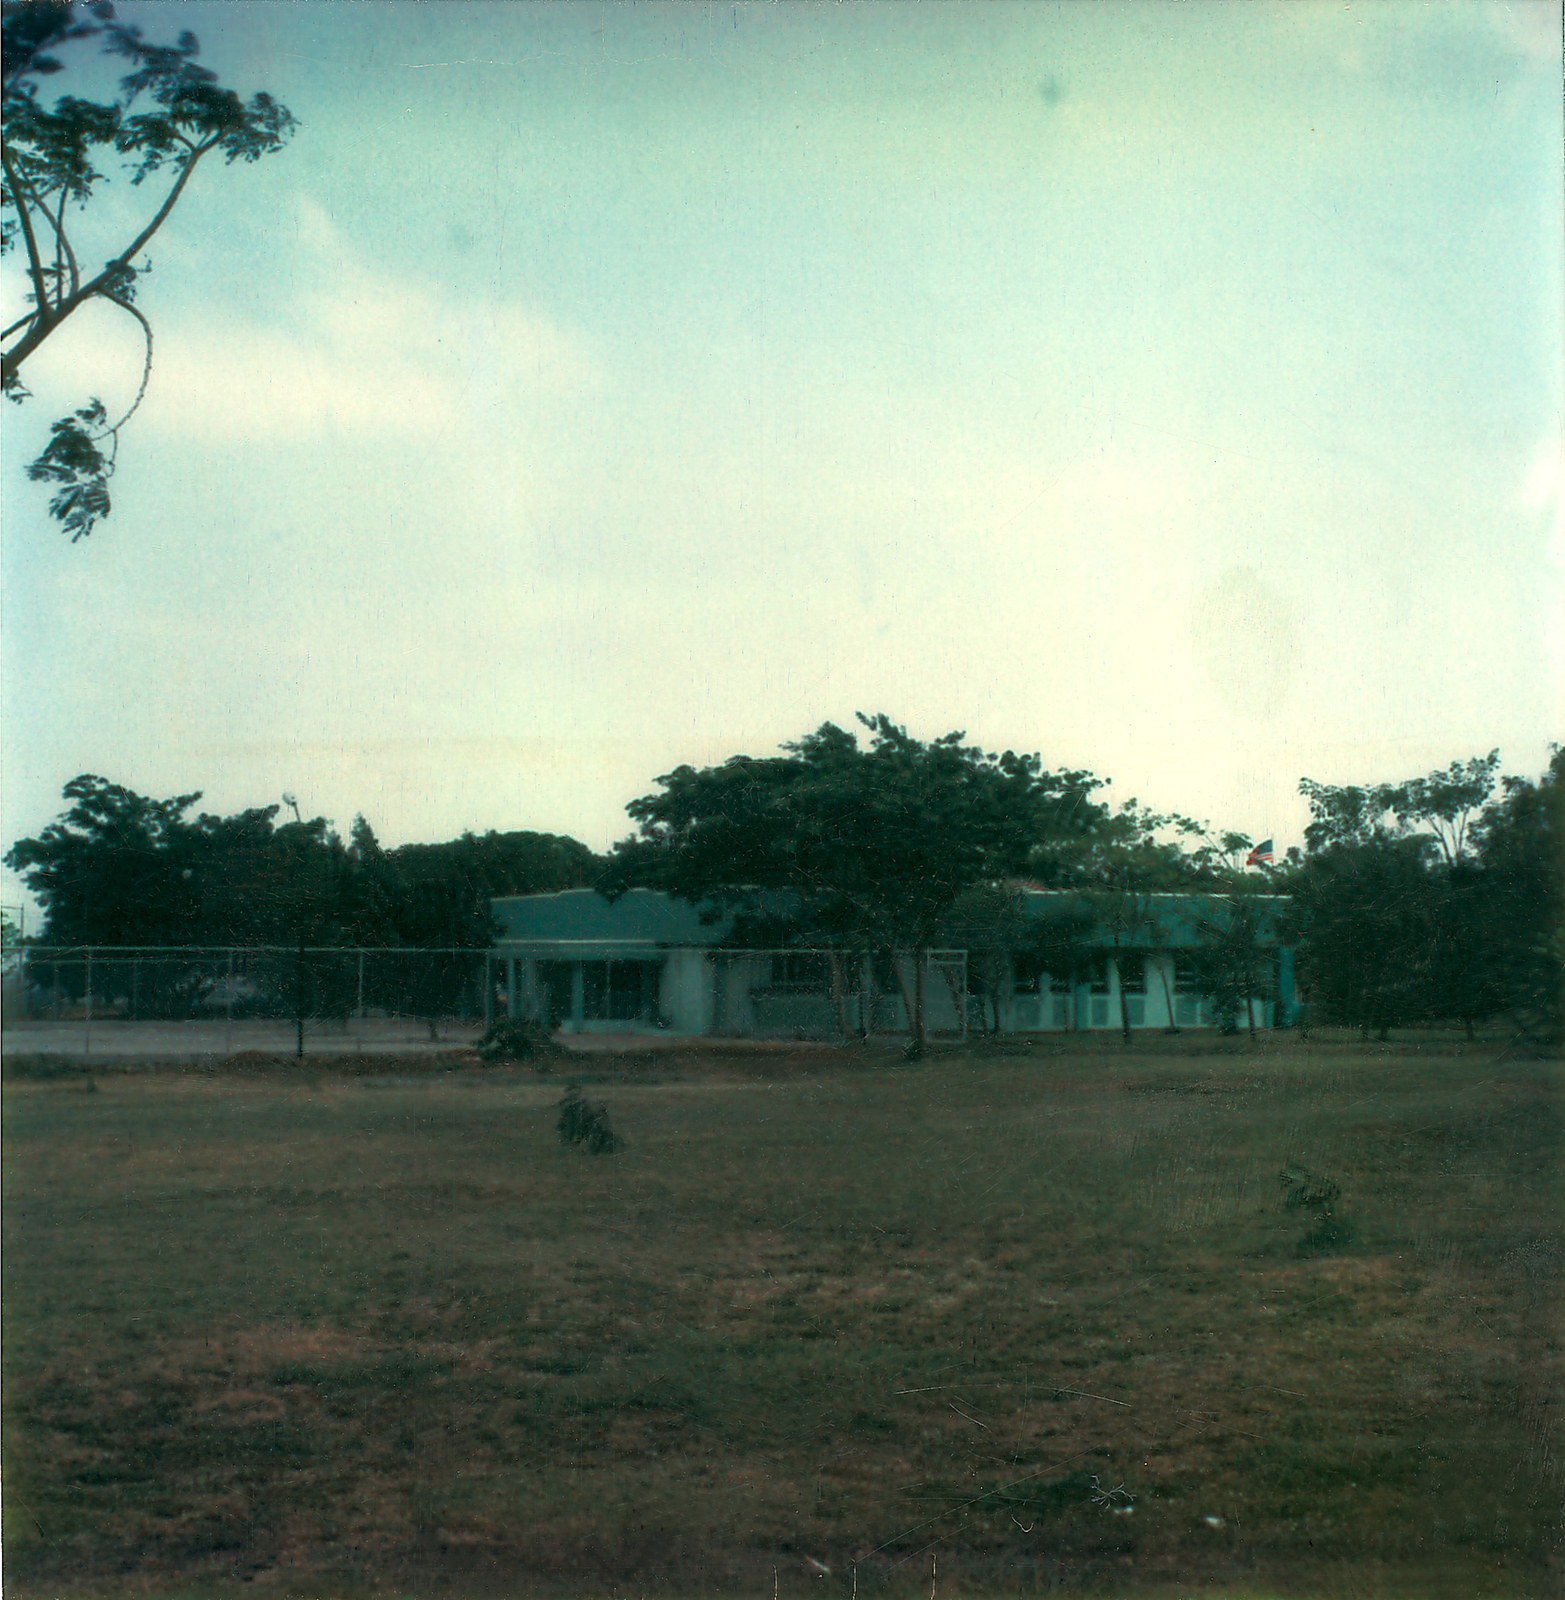 Managua - Annex Office Building - 1979